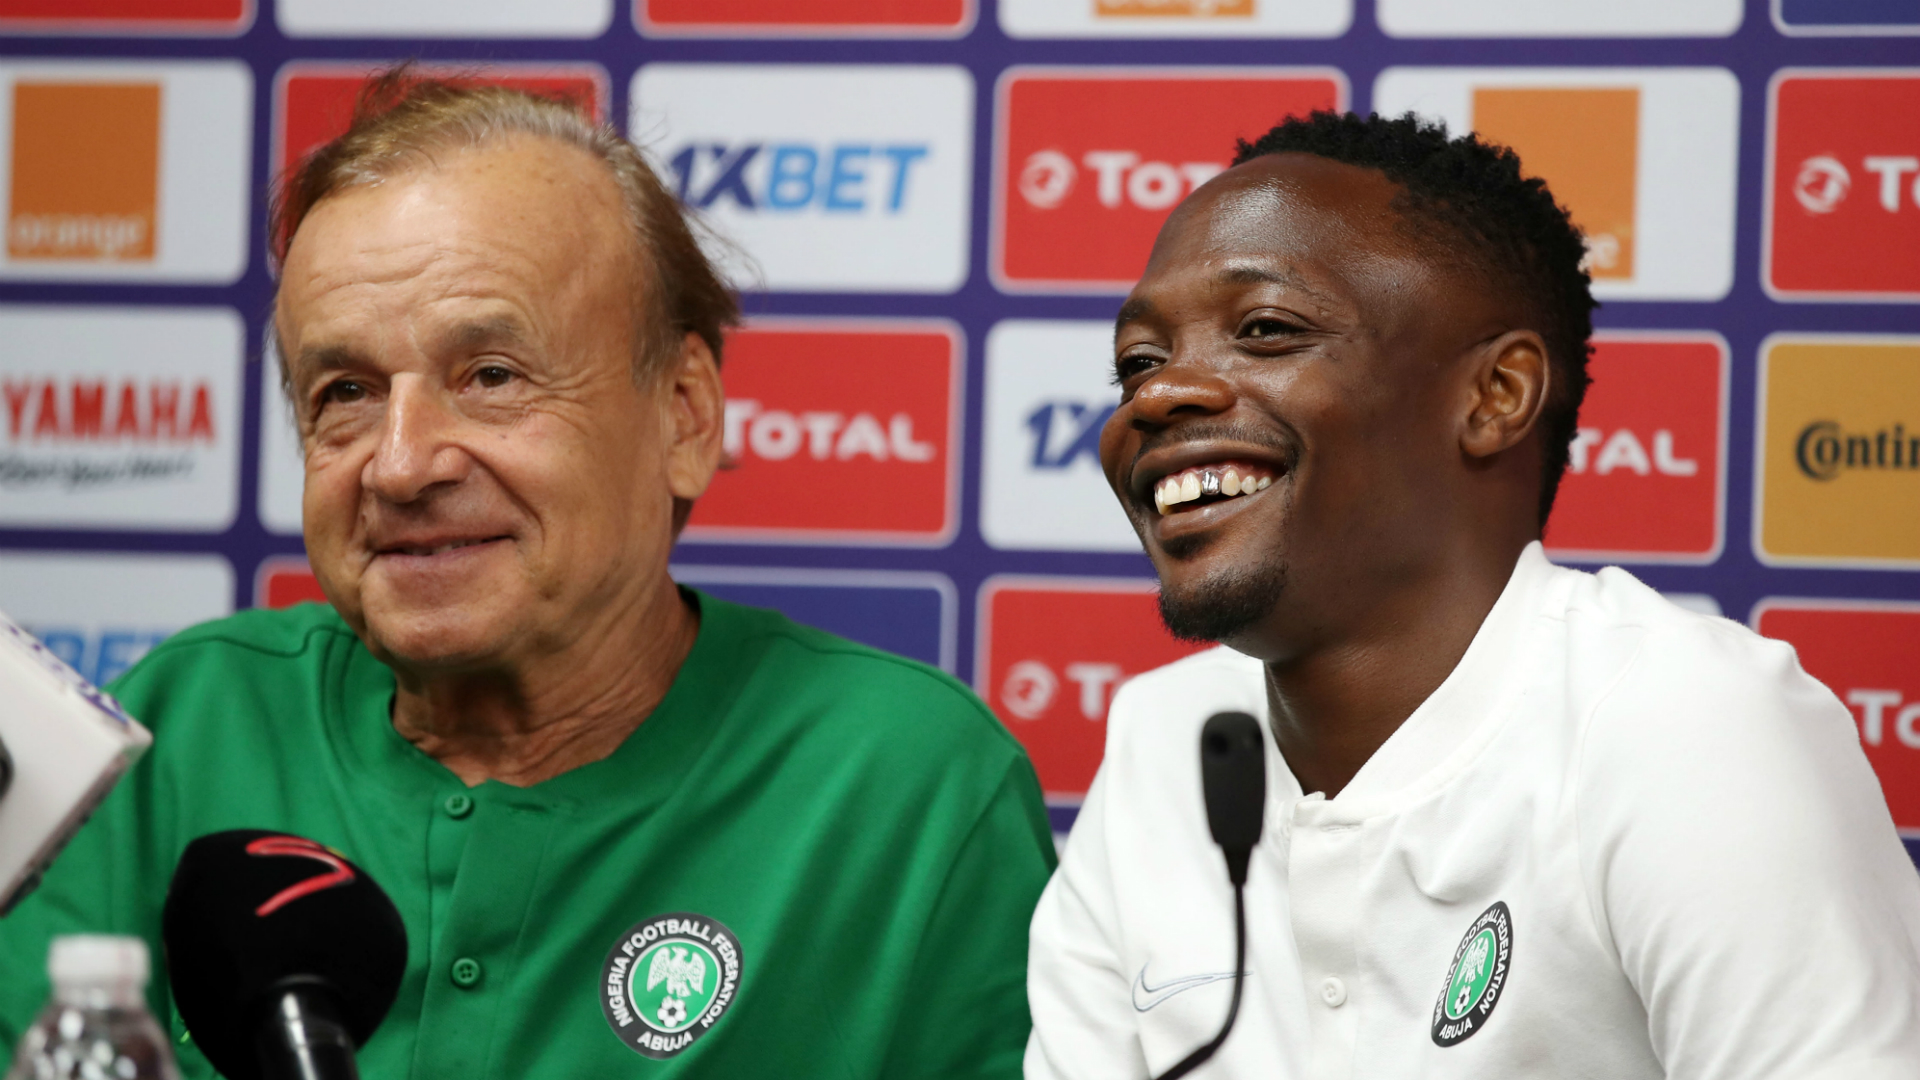 NFF confirms Super Eagles players and coaches returned negative coronavirus tests